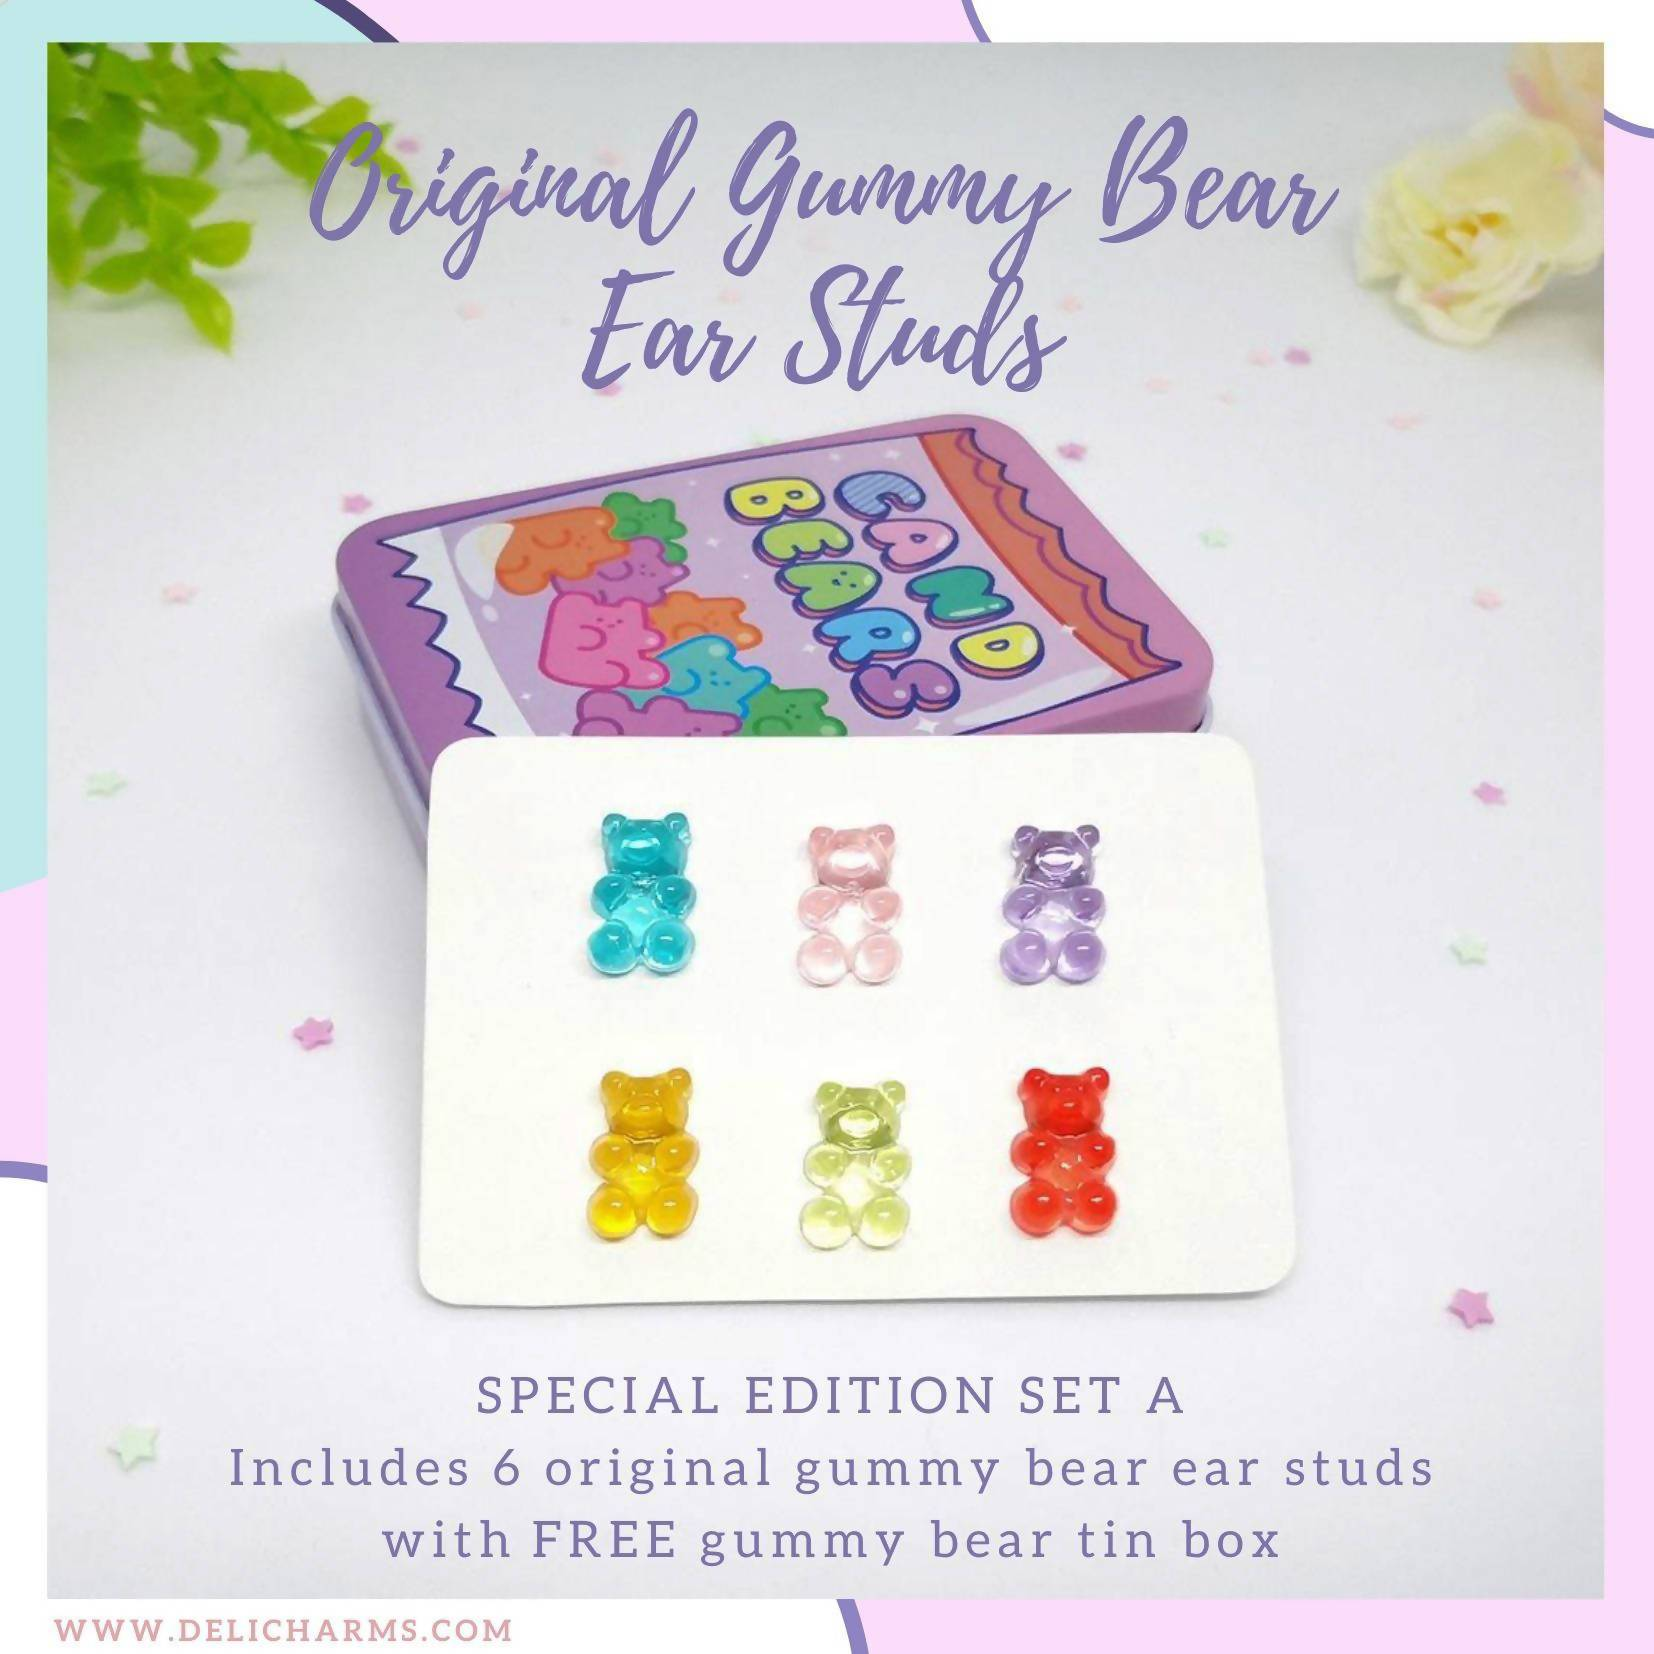 Cute Gummy Bears Earrings Set (Original or Sour) - Earrings - Deli Charms - Naiise